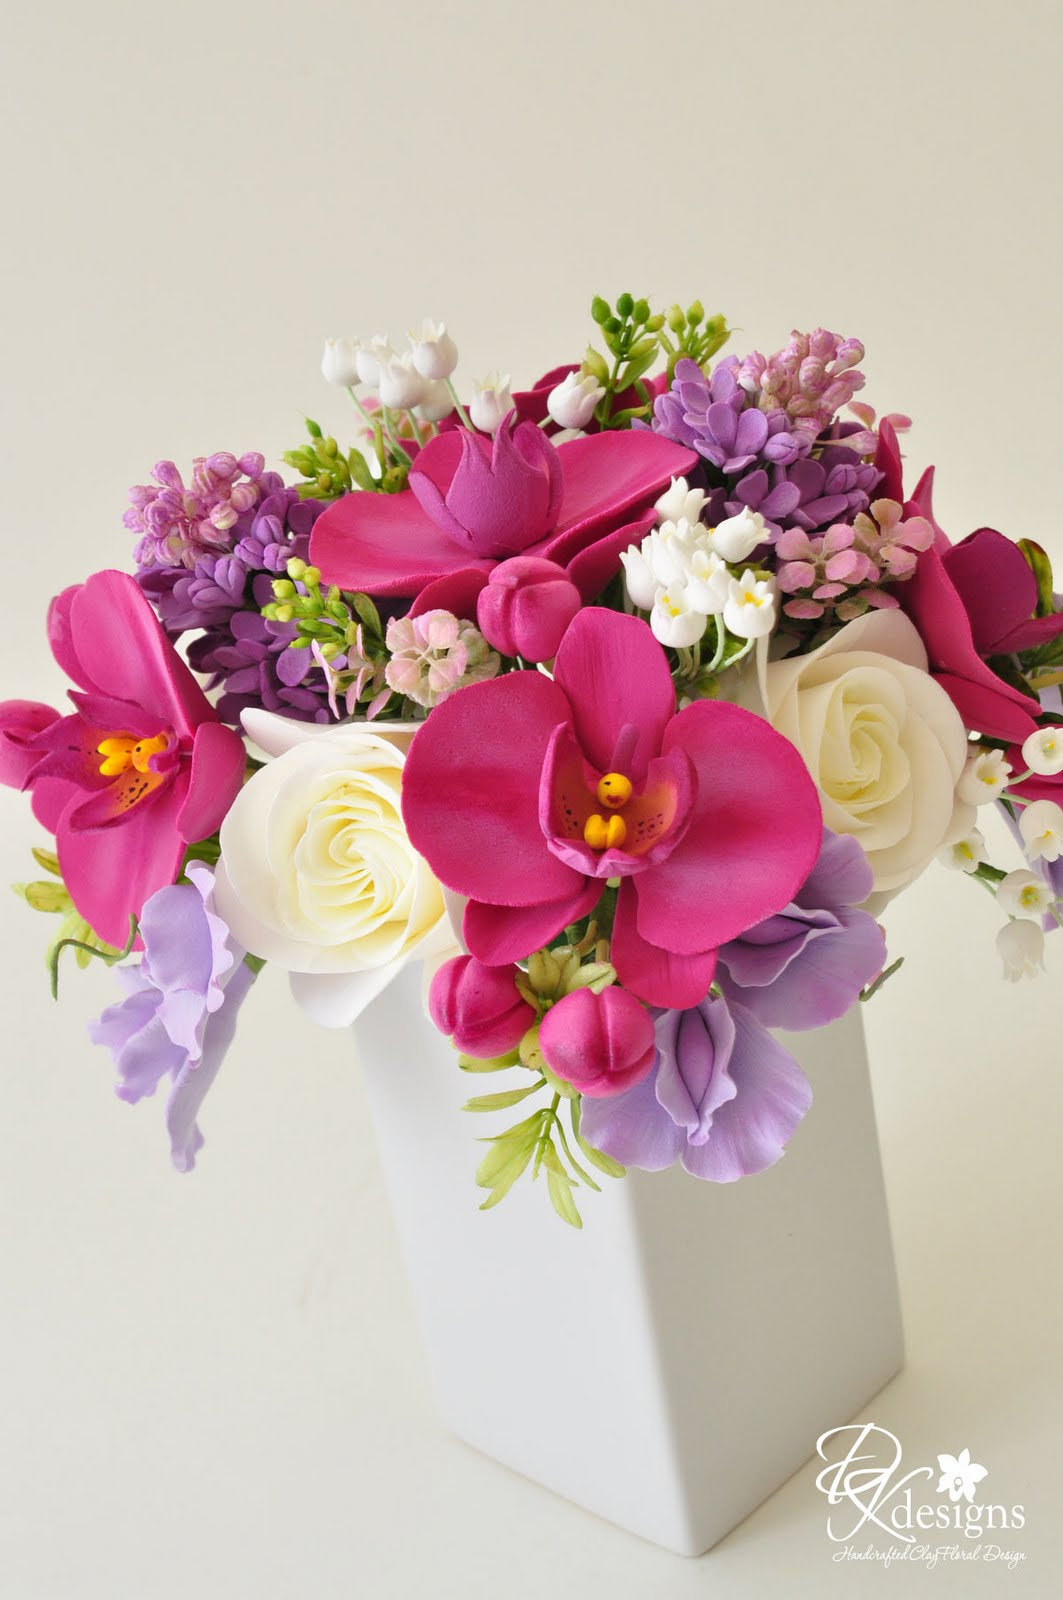 Custom Fl Arrangement Phaleanopsis Orchids Lilac Lily Of The Valley Roses And Sweet Peas